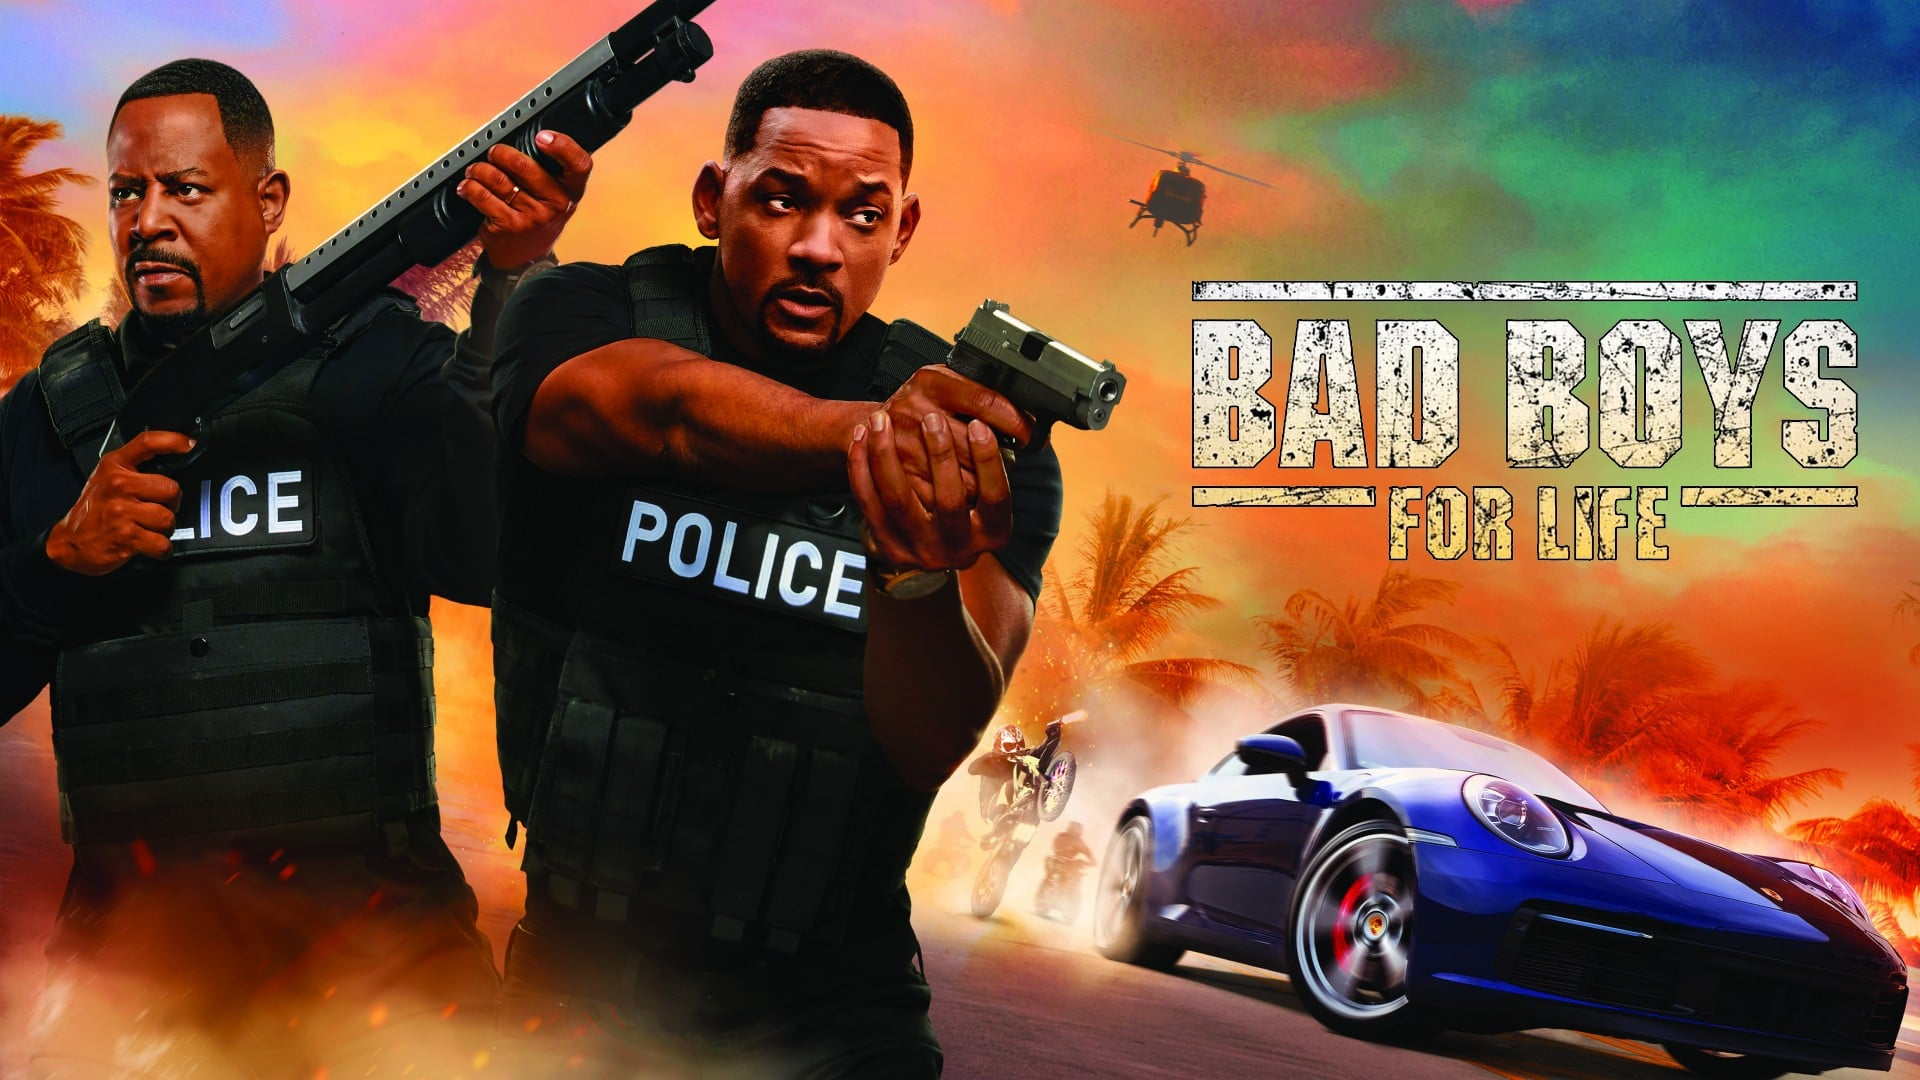 Bad Boys para Siempre (2020) 60FPS 1080p BDRip Latino-Castellano-Inglés